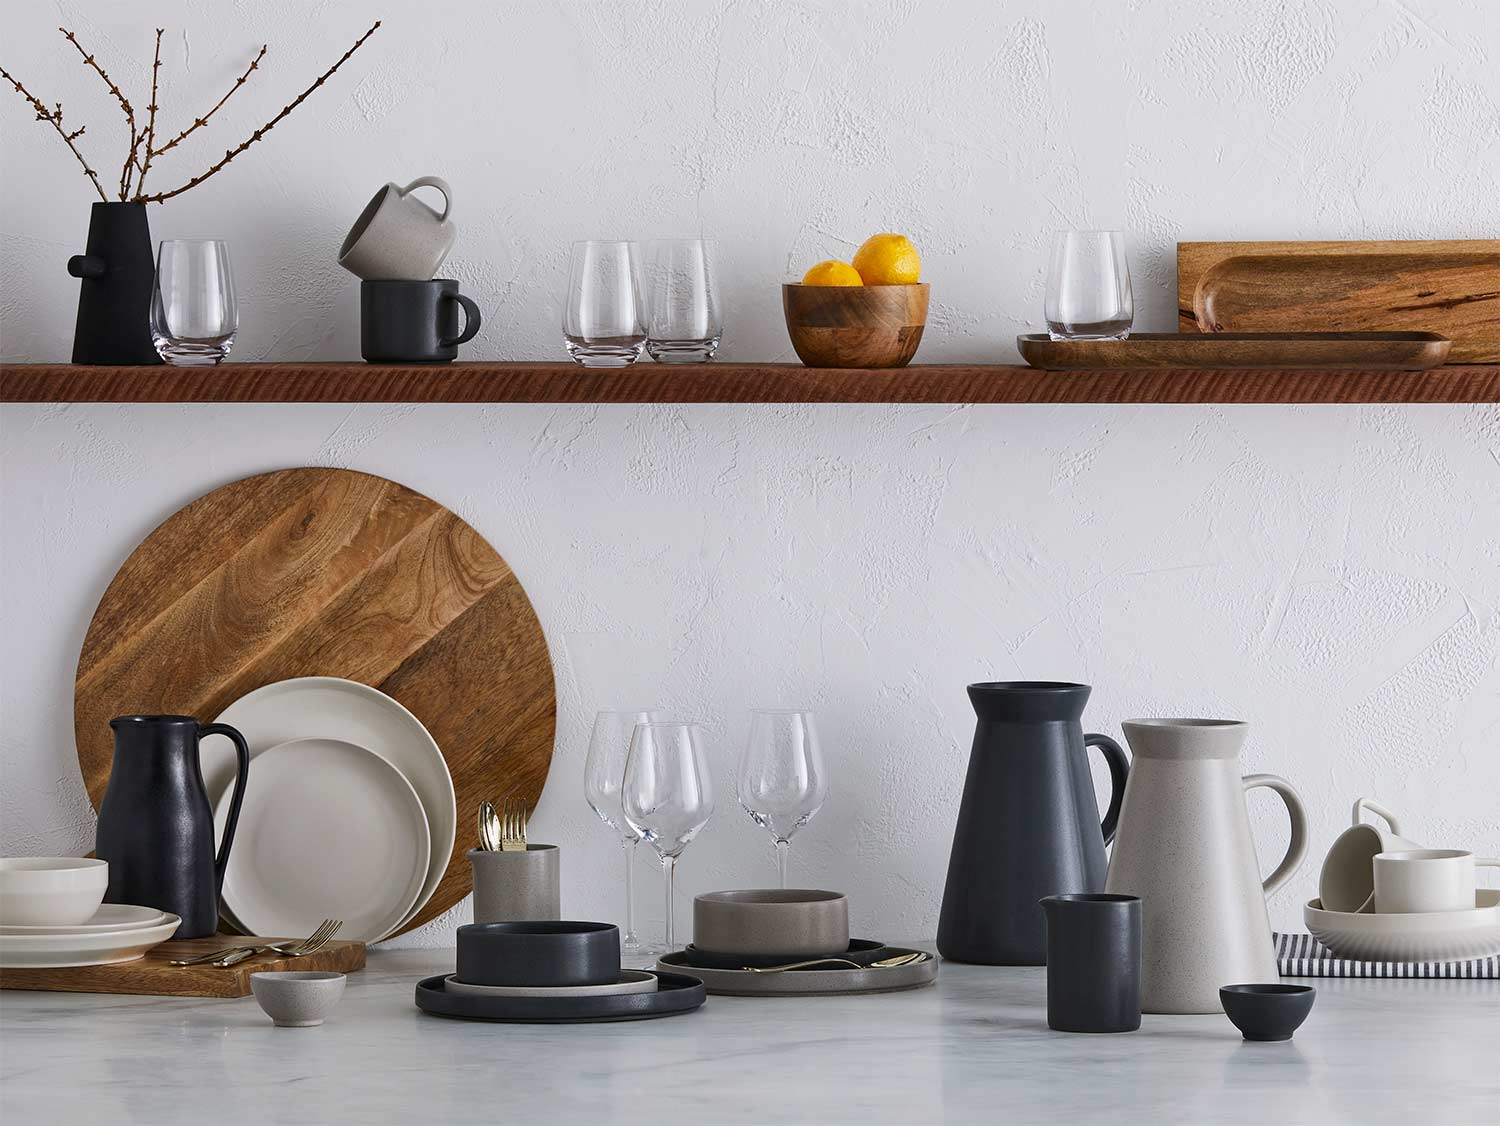 GlucksteinHome | Portuguese stoneware meets rich tones and striking silhouettes for a relaxed table to linger over